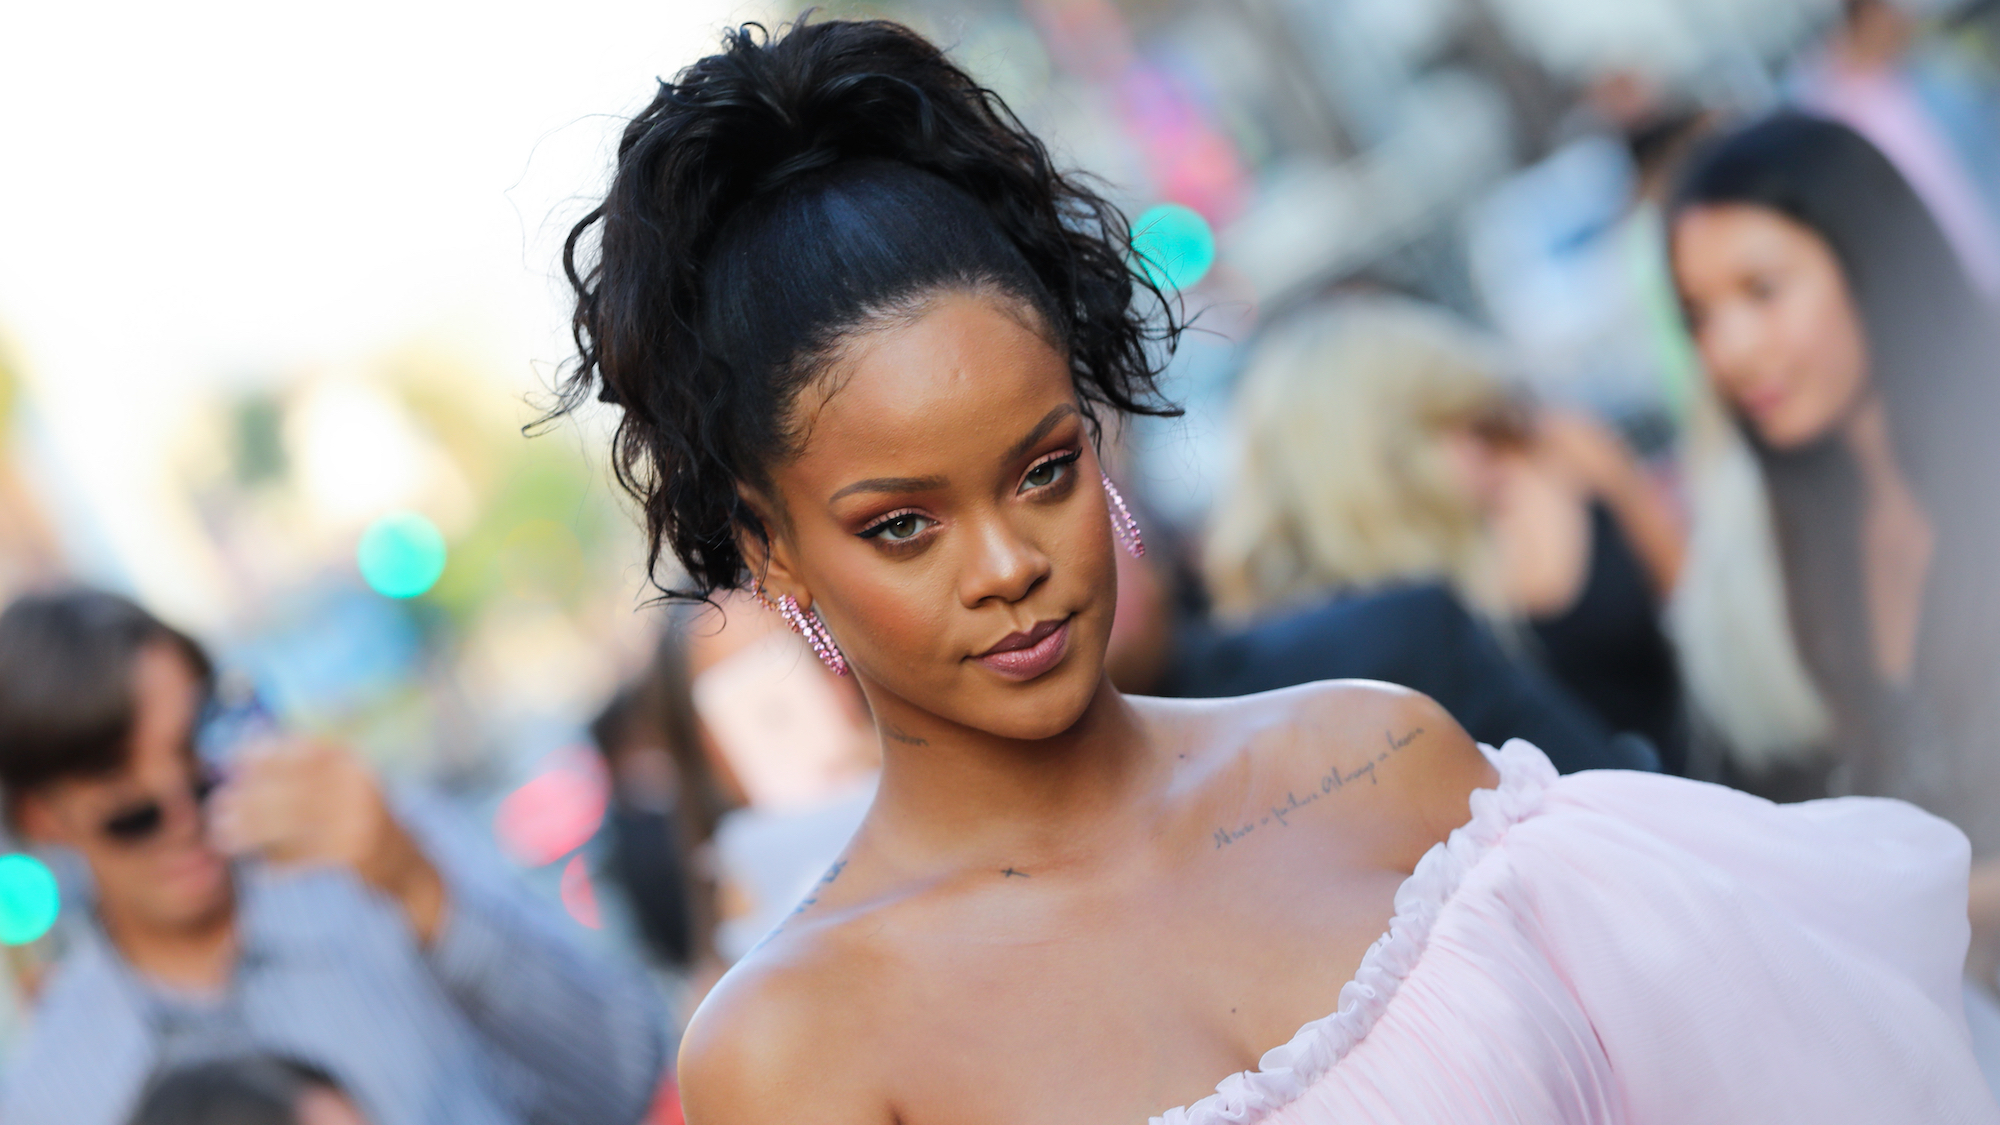 Best Hairstyles For Oval Faces 2019 According To Hair Experts Intended For Fashionable Medium Hairstyles For Black Women With Oval Faces (View 6 of 20)